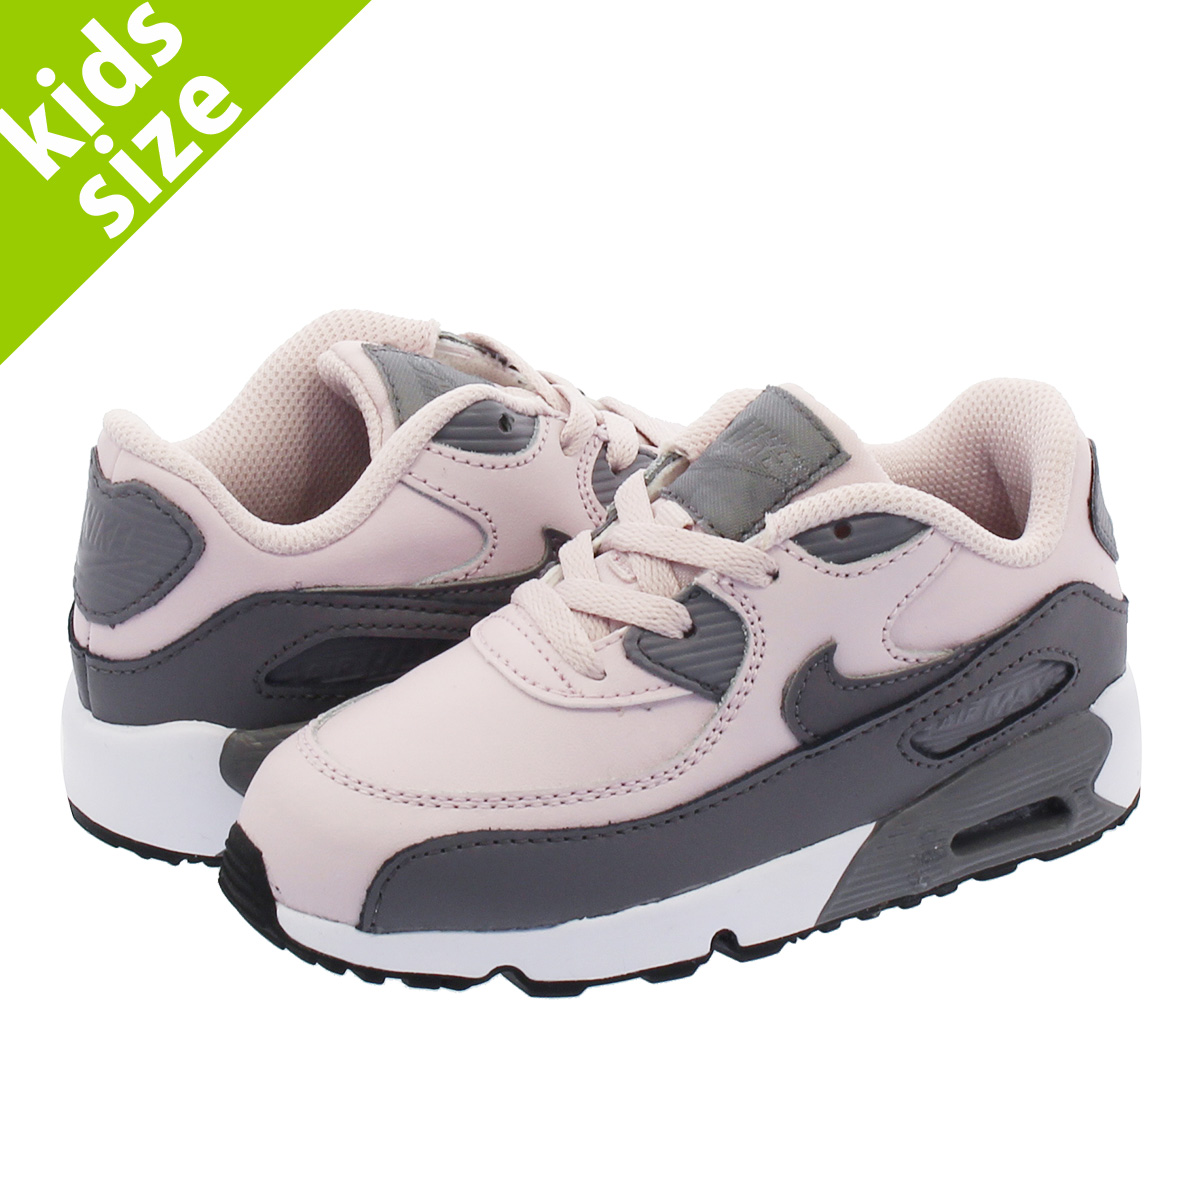 sale retailer 1ff77 67a36 SELECT SHOP LOWTEX NIKE AIR MAX 90 LTR TD Kie Ney AMAX 90 leather TD  BARELY ROSEGREY 833,379-601  Rakuten Global Market